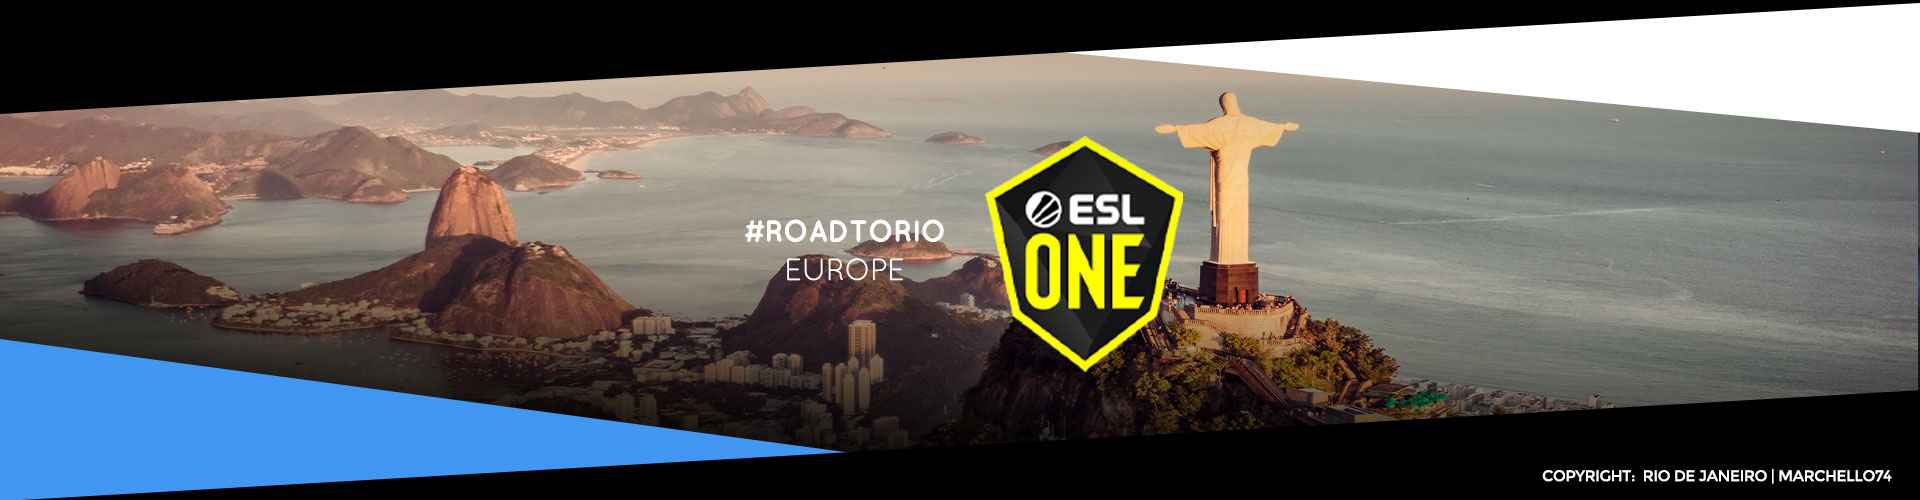 ESL One Road to Rio Europe